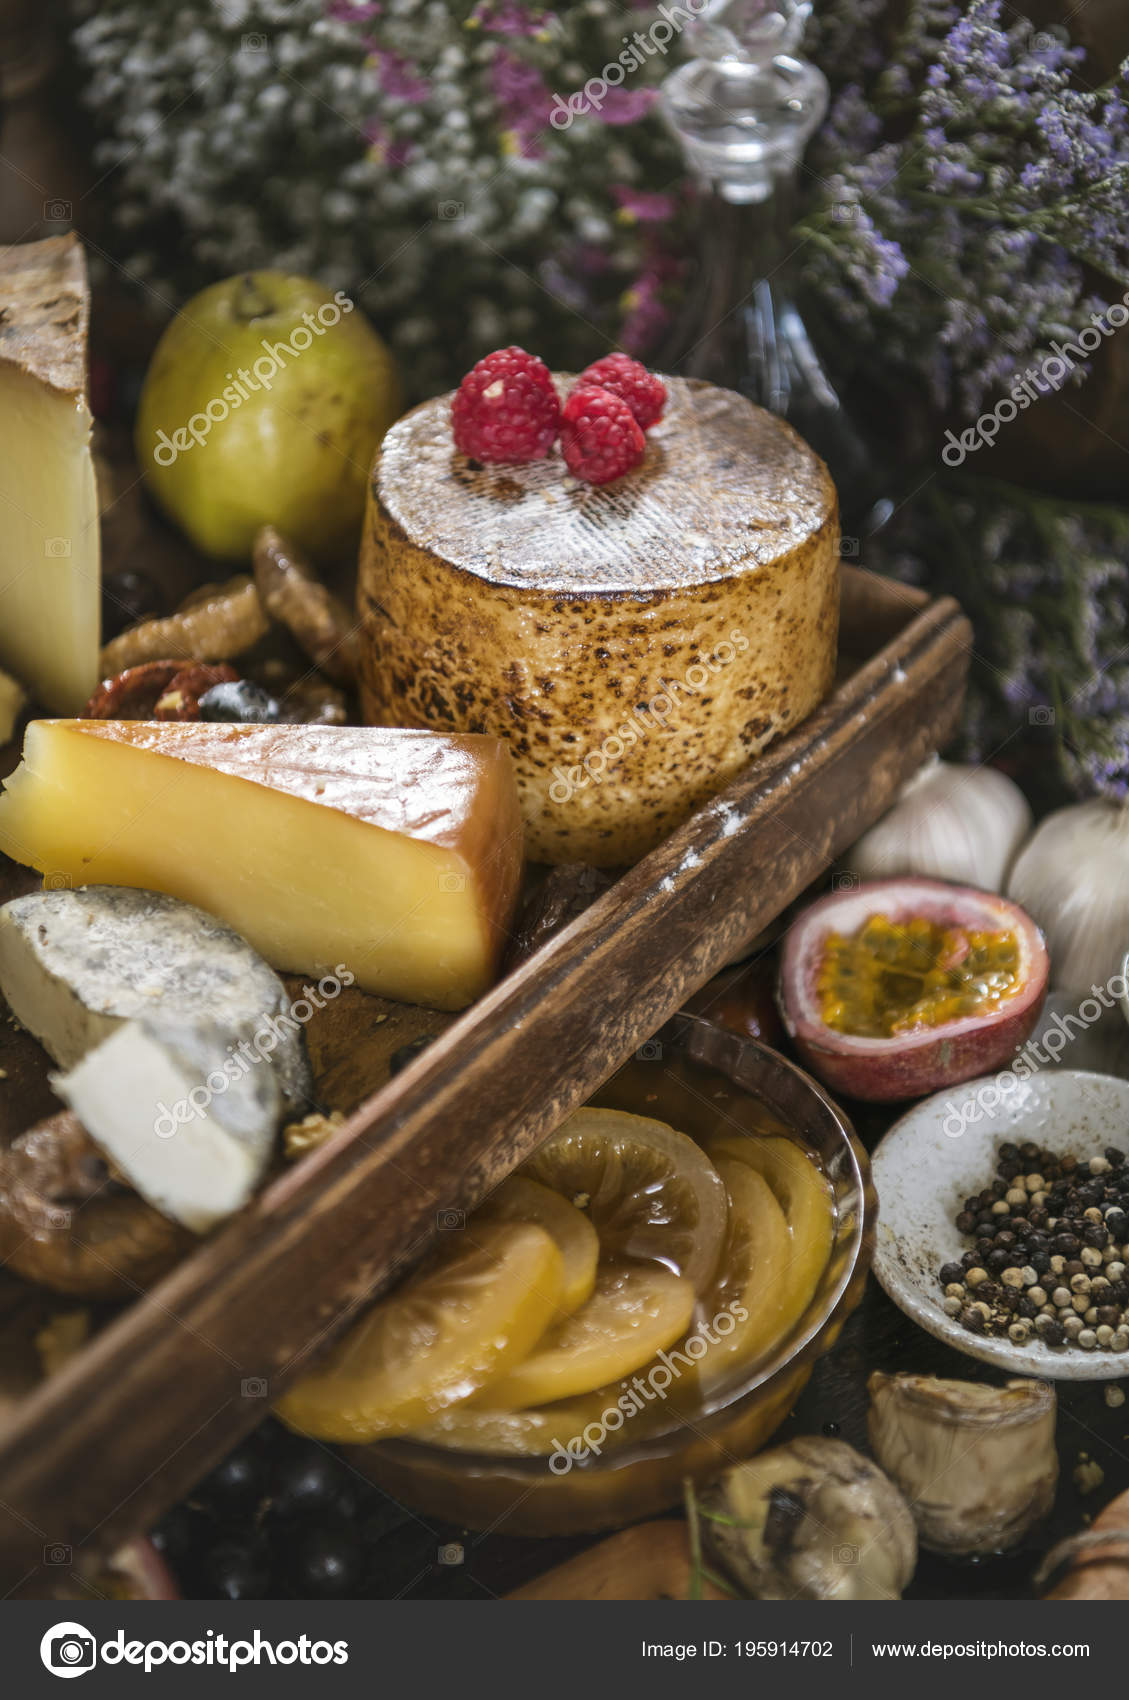 Cheese Platter Food Photography Recipe Idea Stock Photo C Rawpixel 195914702